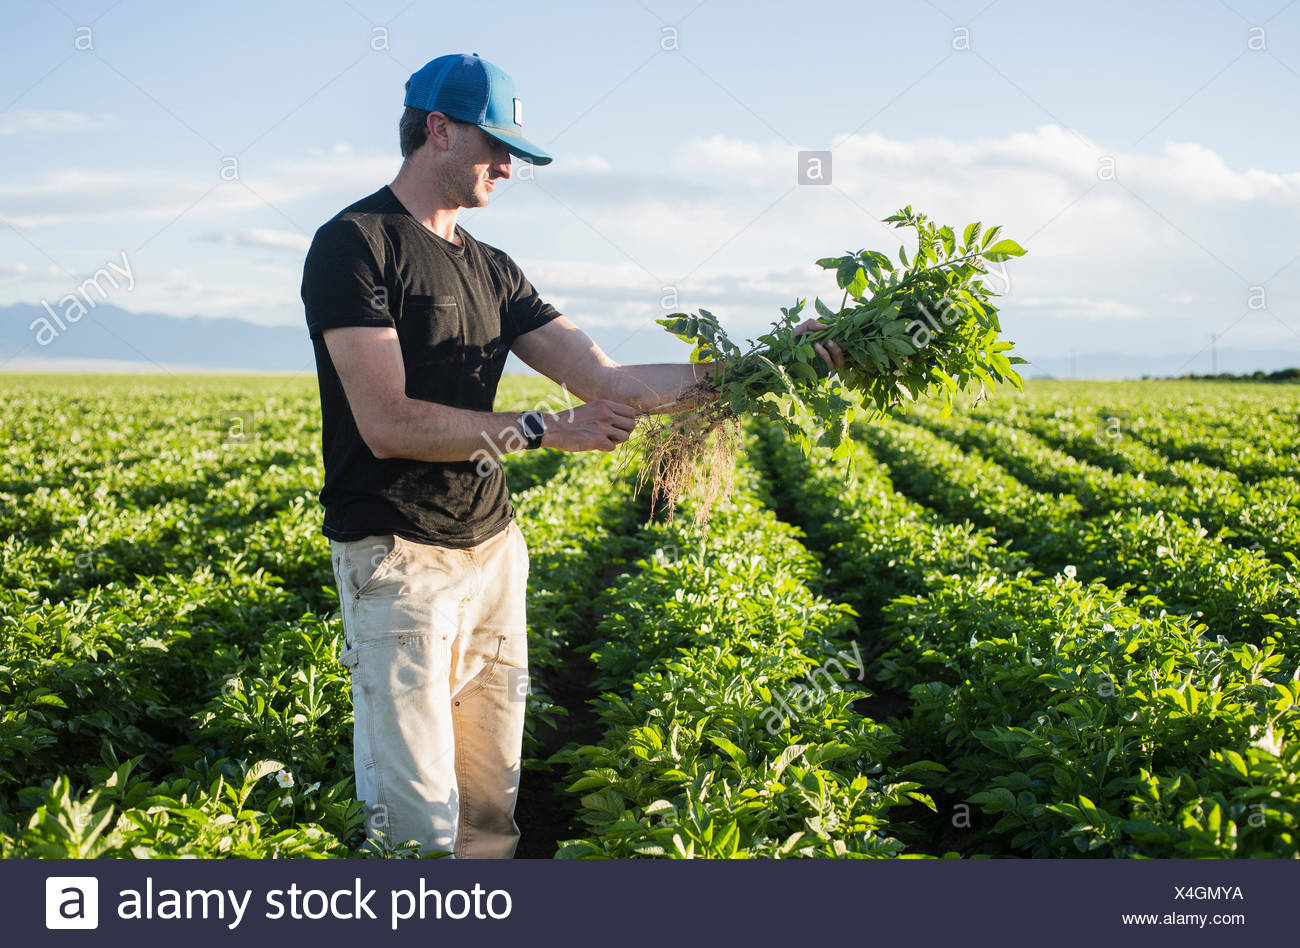 Mature man holding green plant - Stock Image